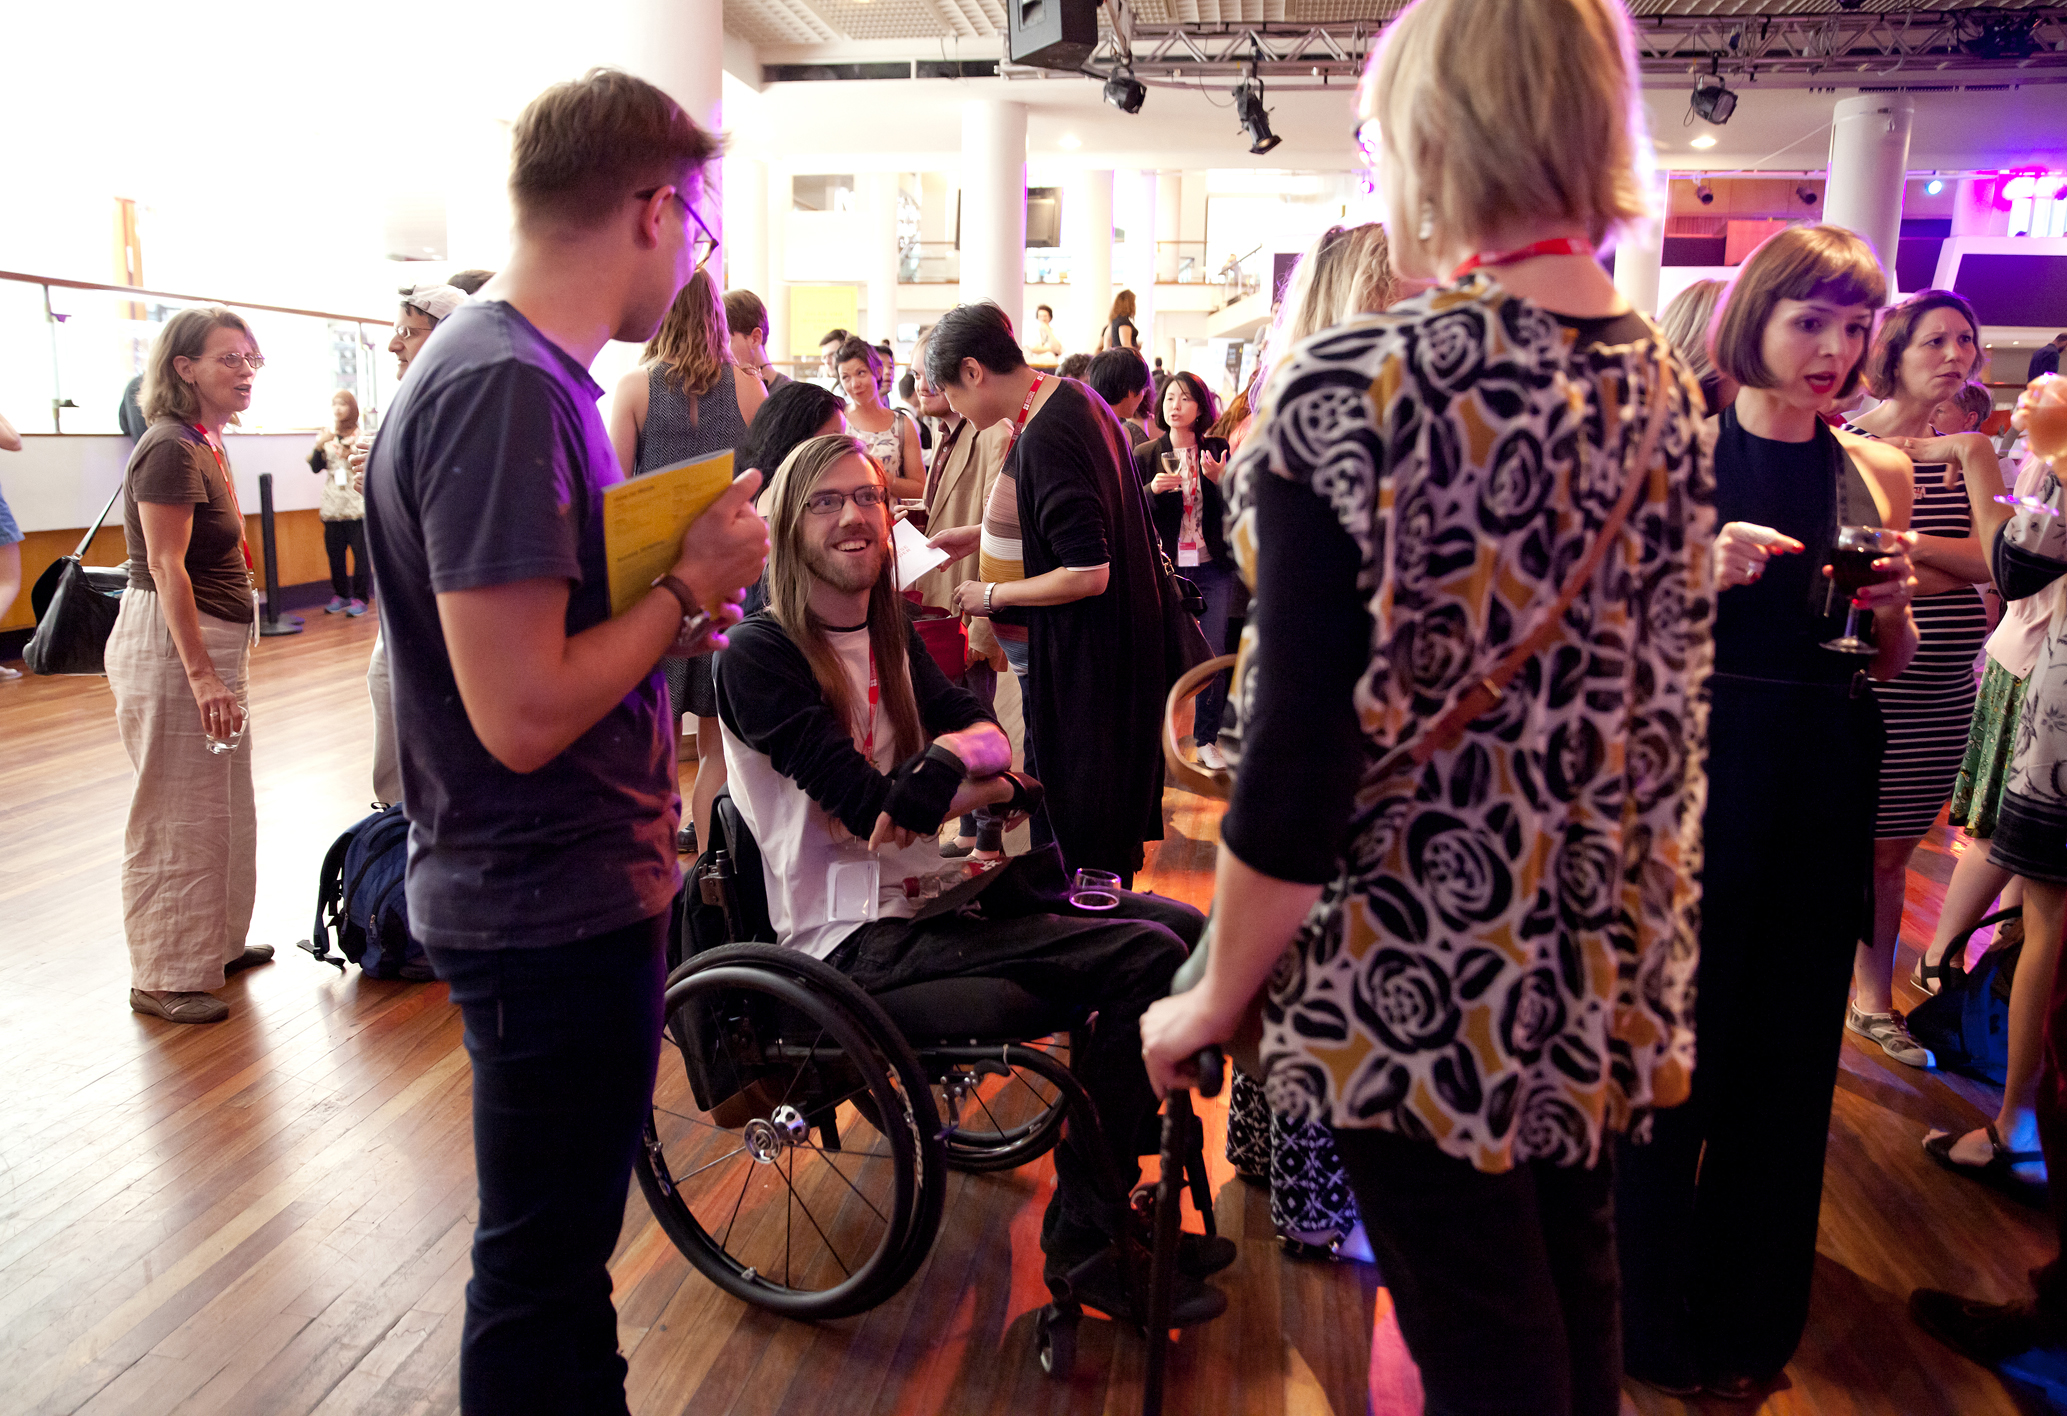 a group of people are talking to each other in a crowed at a launch event. in the centre is a wheelchair user